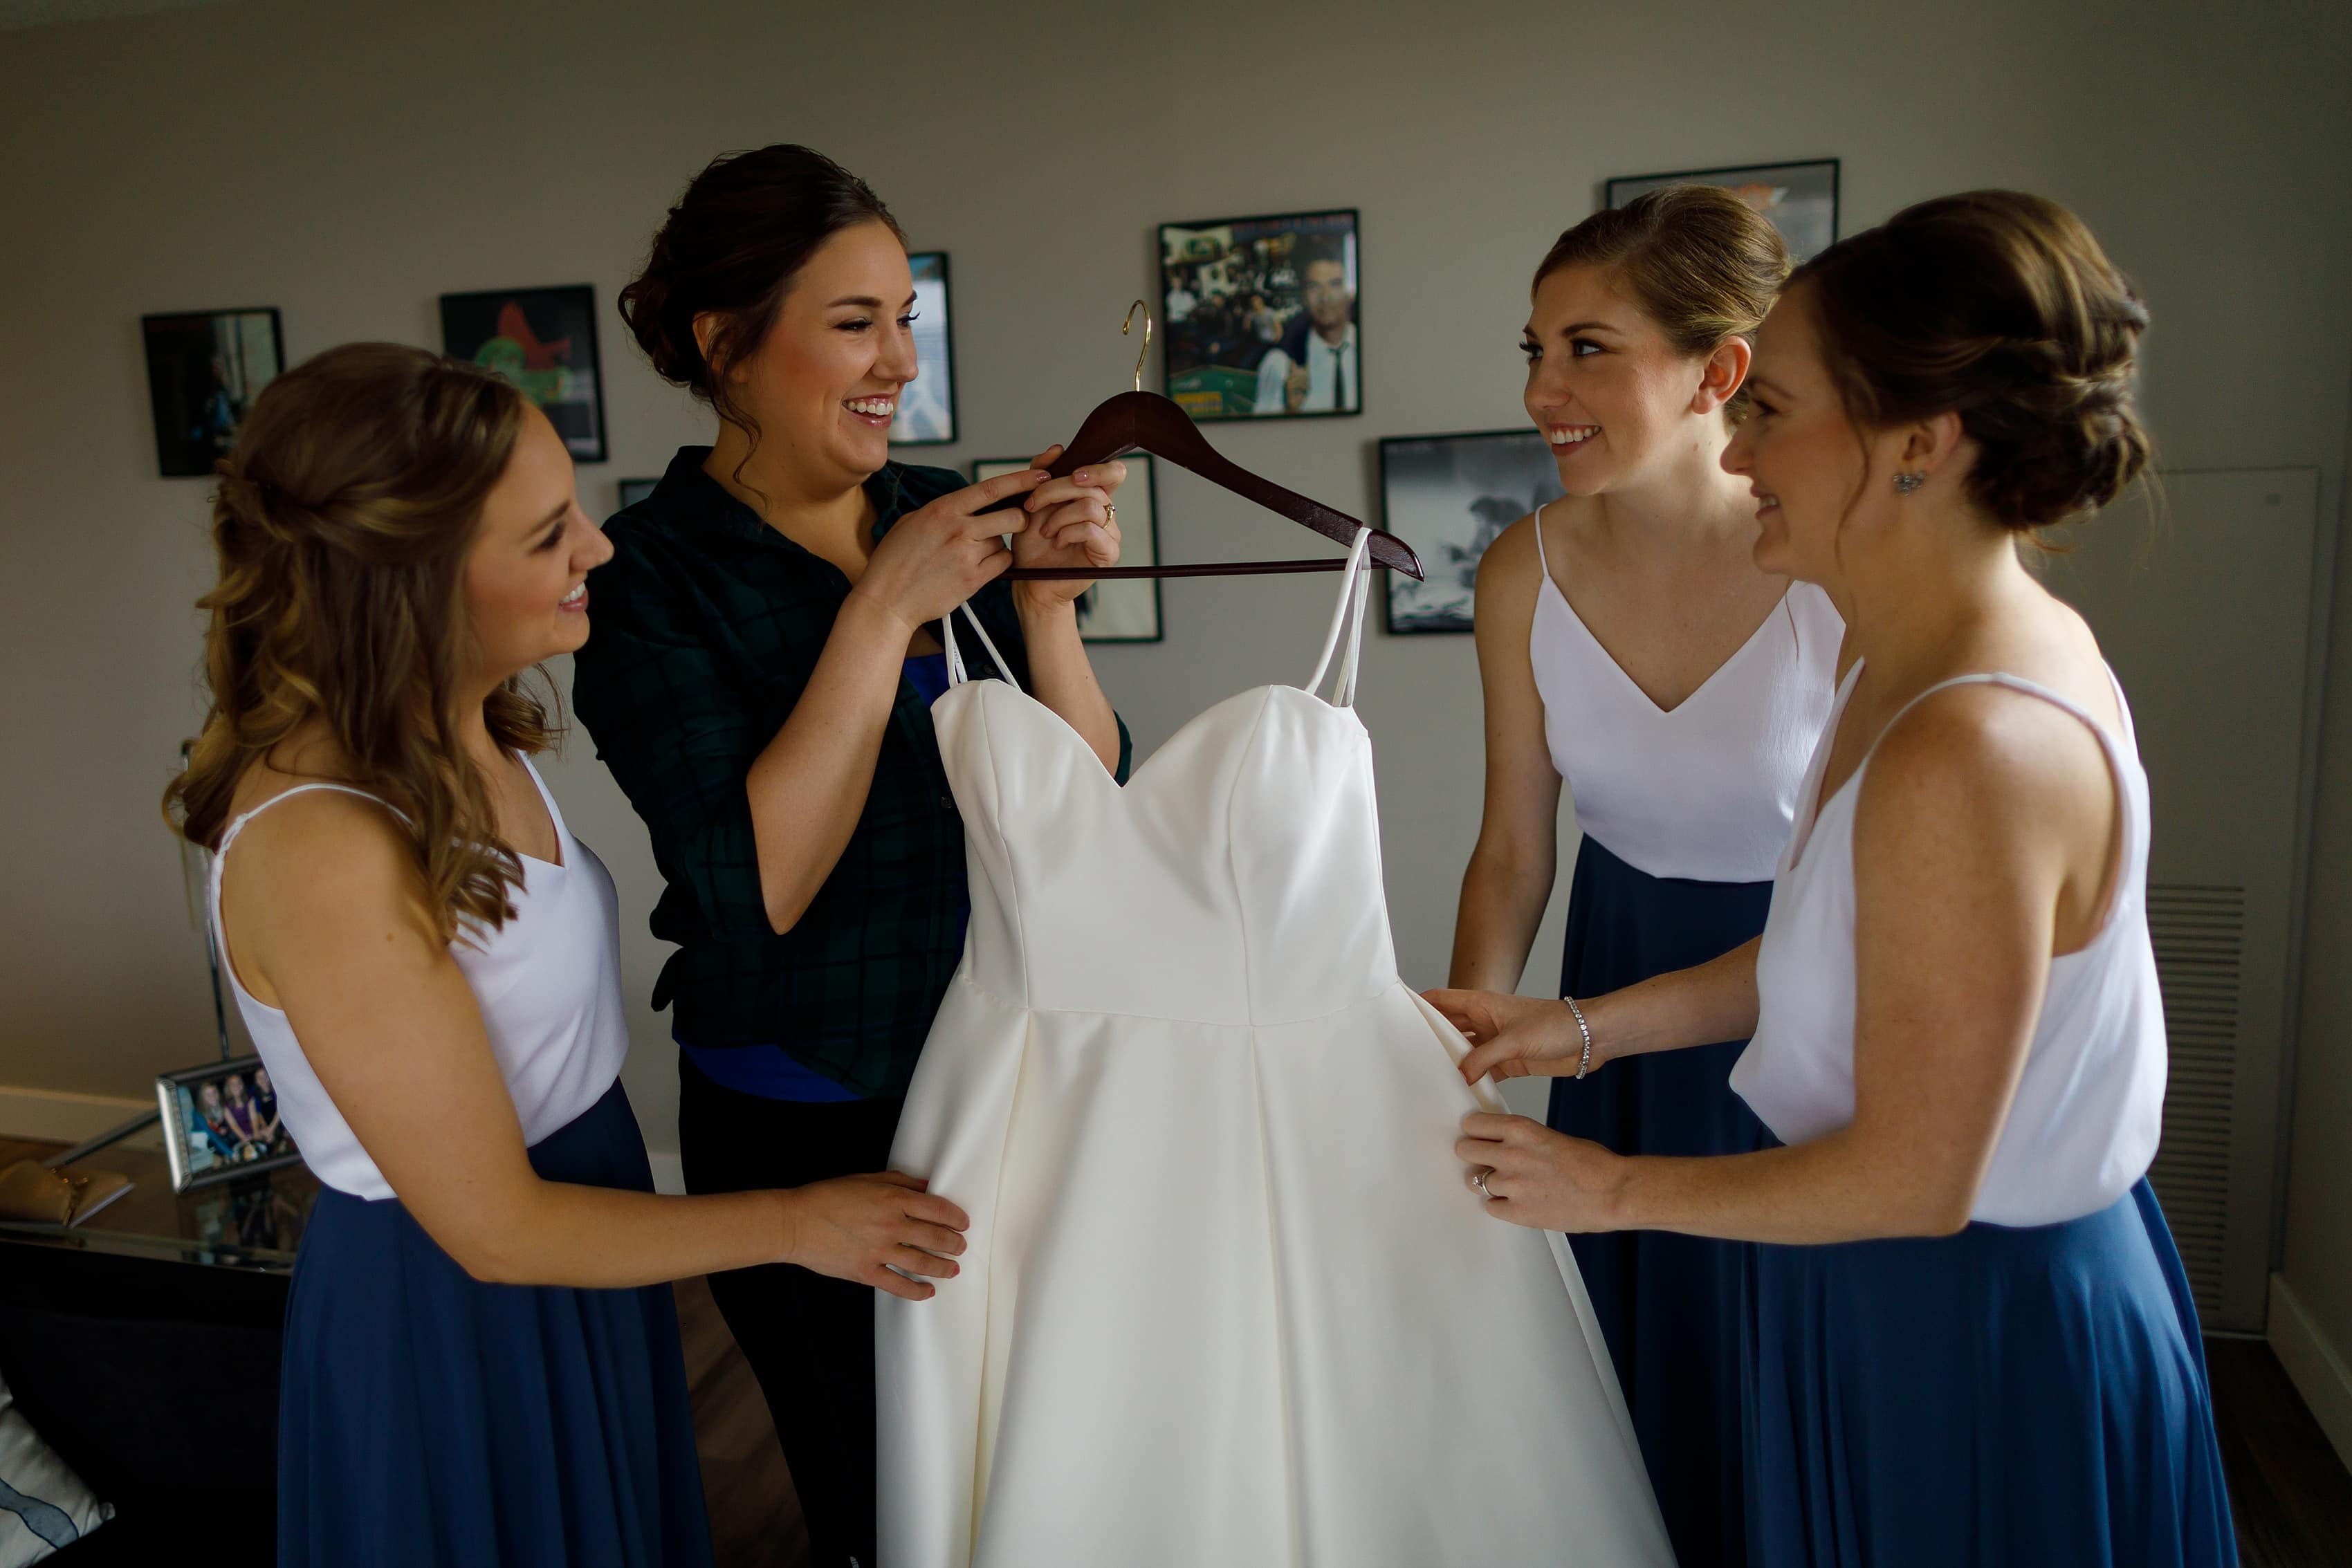 bride and bridesmaids hold wedding dress